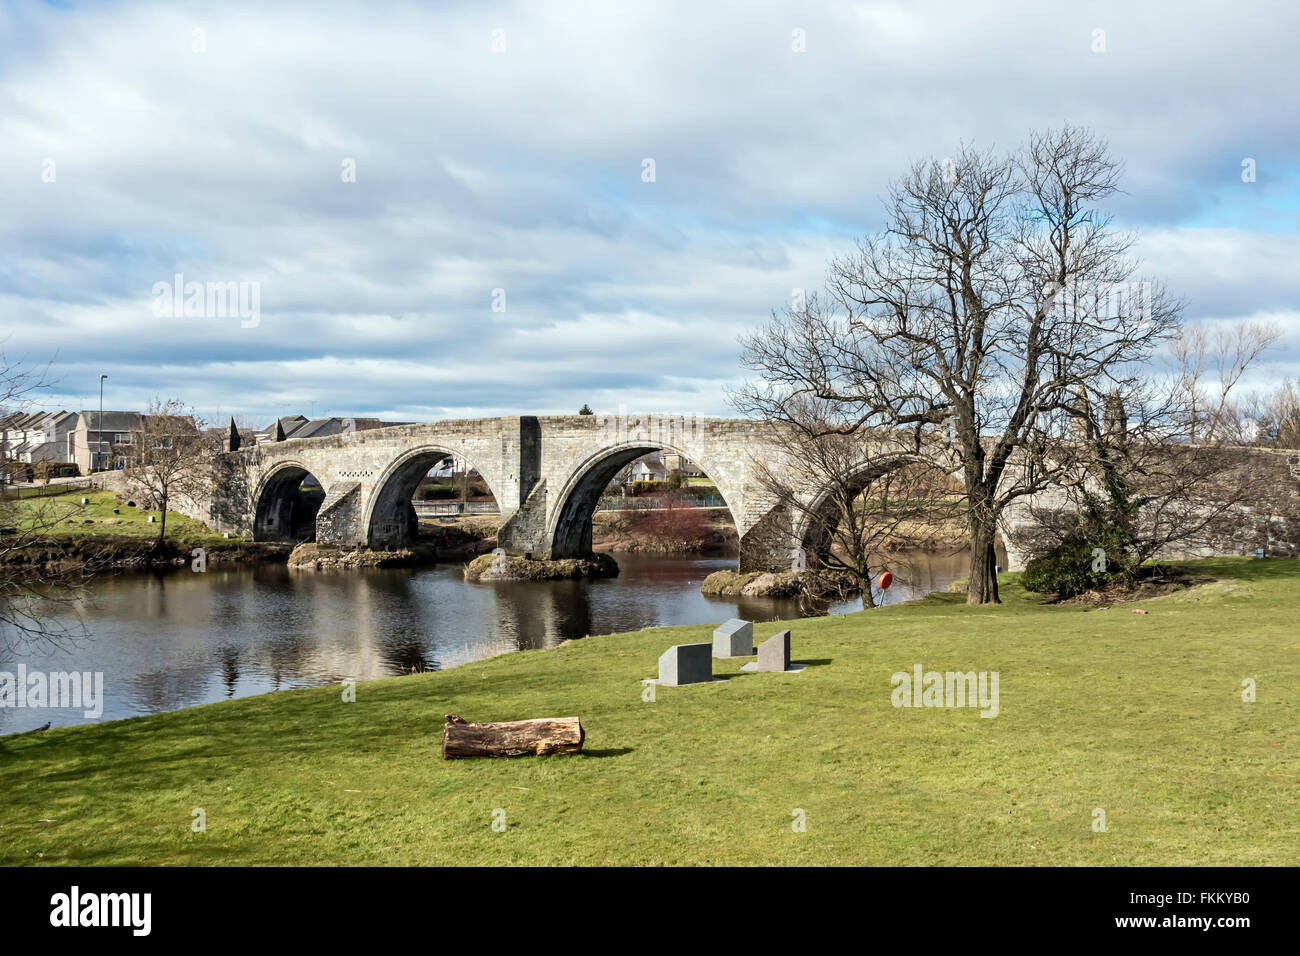 Stirling Old Bridge crossing the River Forth at Stirling in Scotland with part of battle field and plinths describing - Stock Image